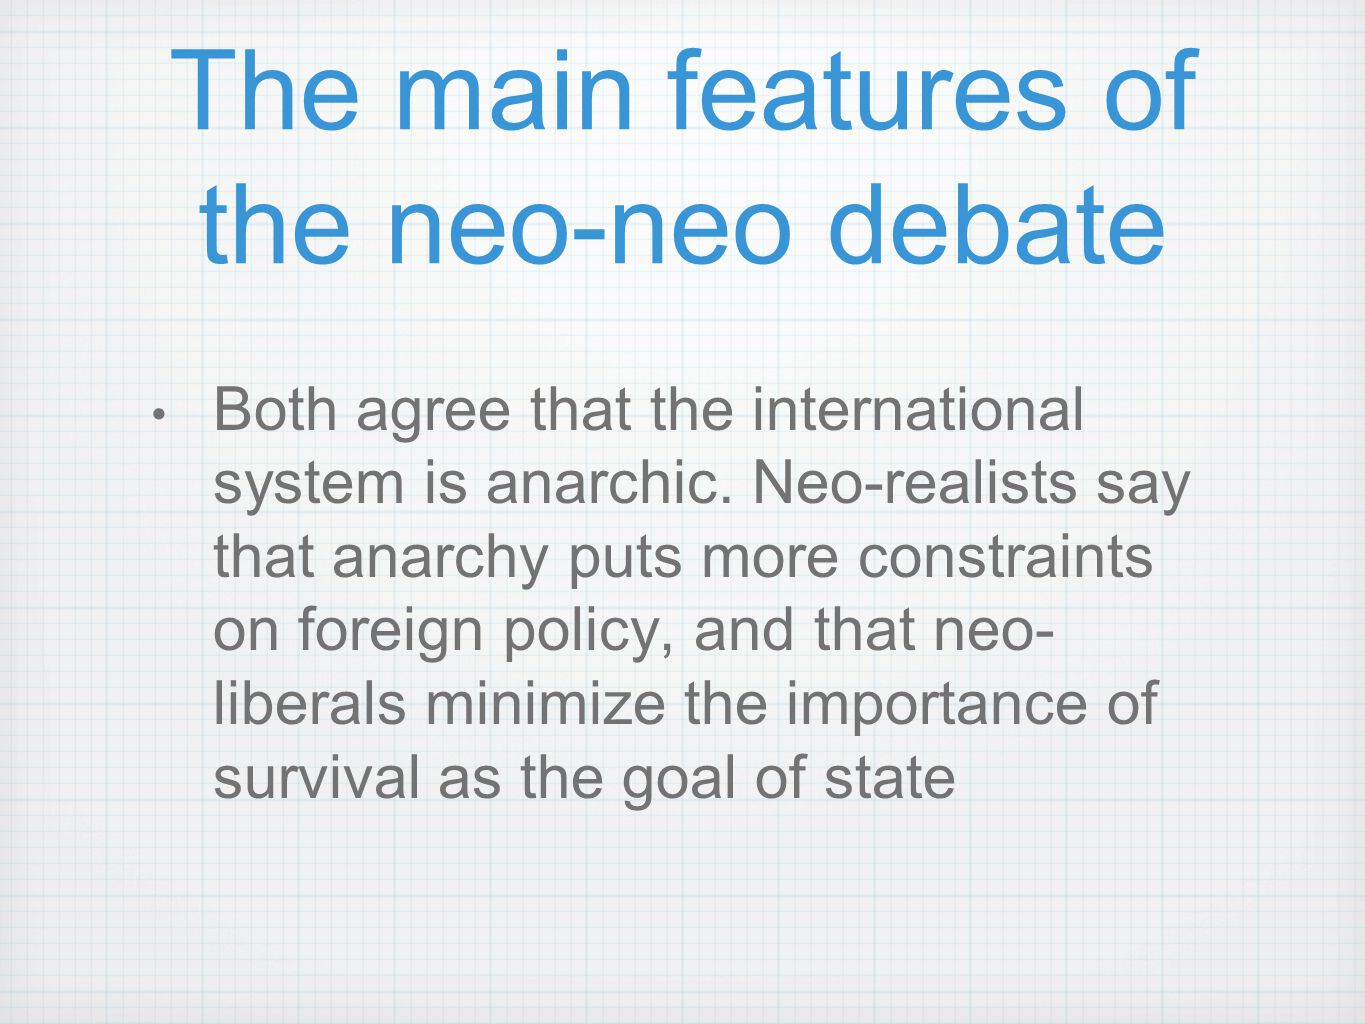 The main features of the neo-neo debate